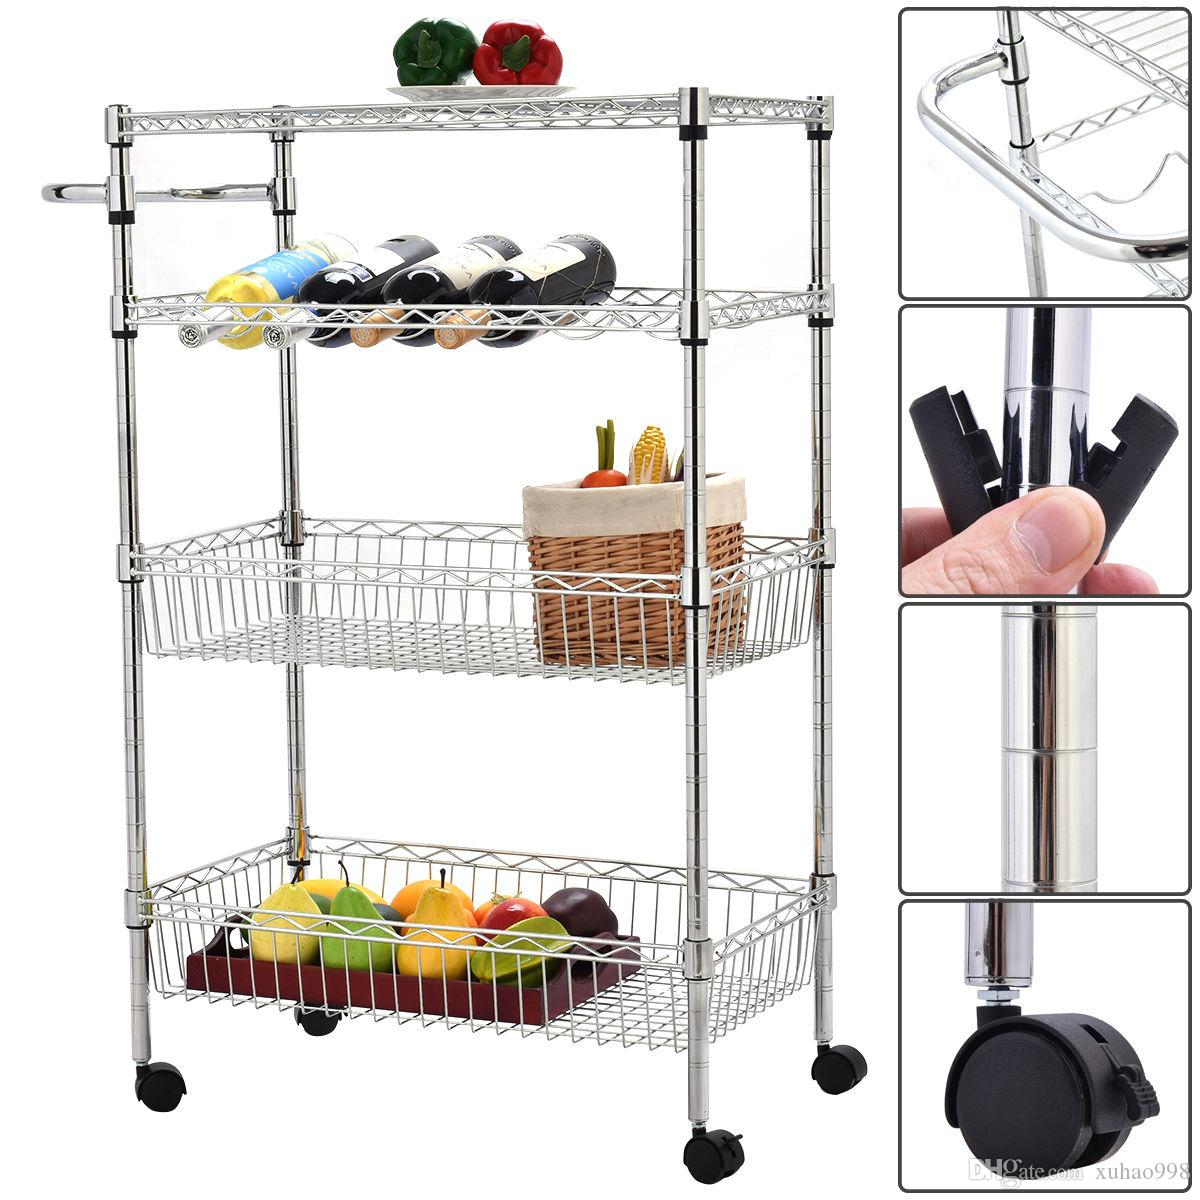 2018 4 Tier Rolling Steel Kitchen Trolley Cart Island Wire Rack Shelf Stand  2 Baskets From Xuhao998, $28.15 | Dhgate.Com